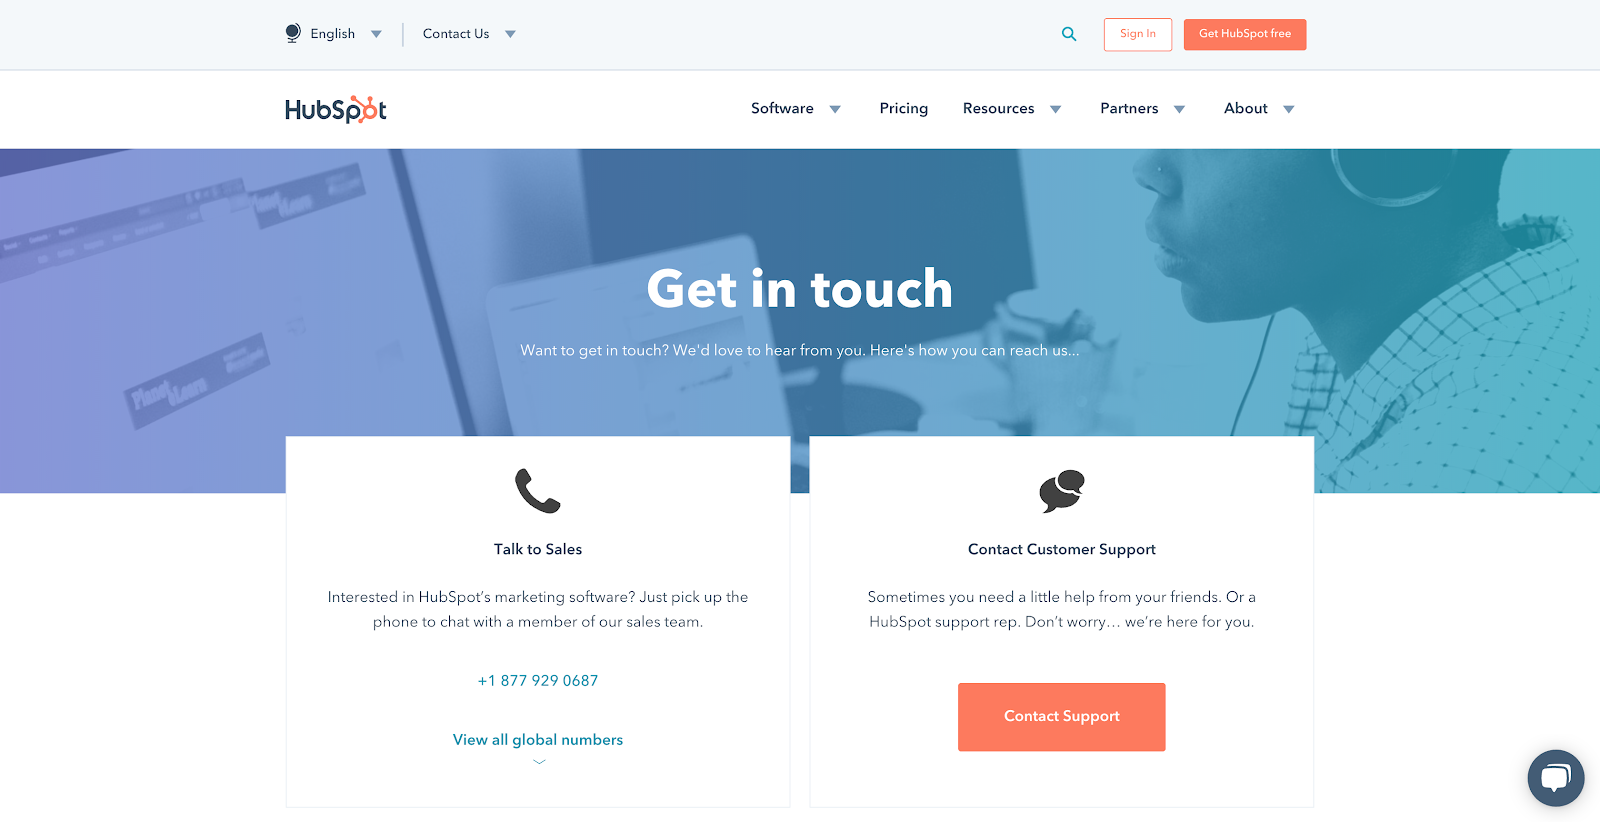 29 best contact us page examples to inspire yours [Updated for 2021]